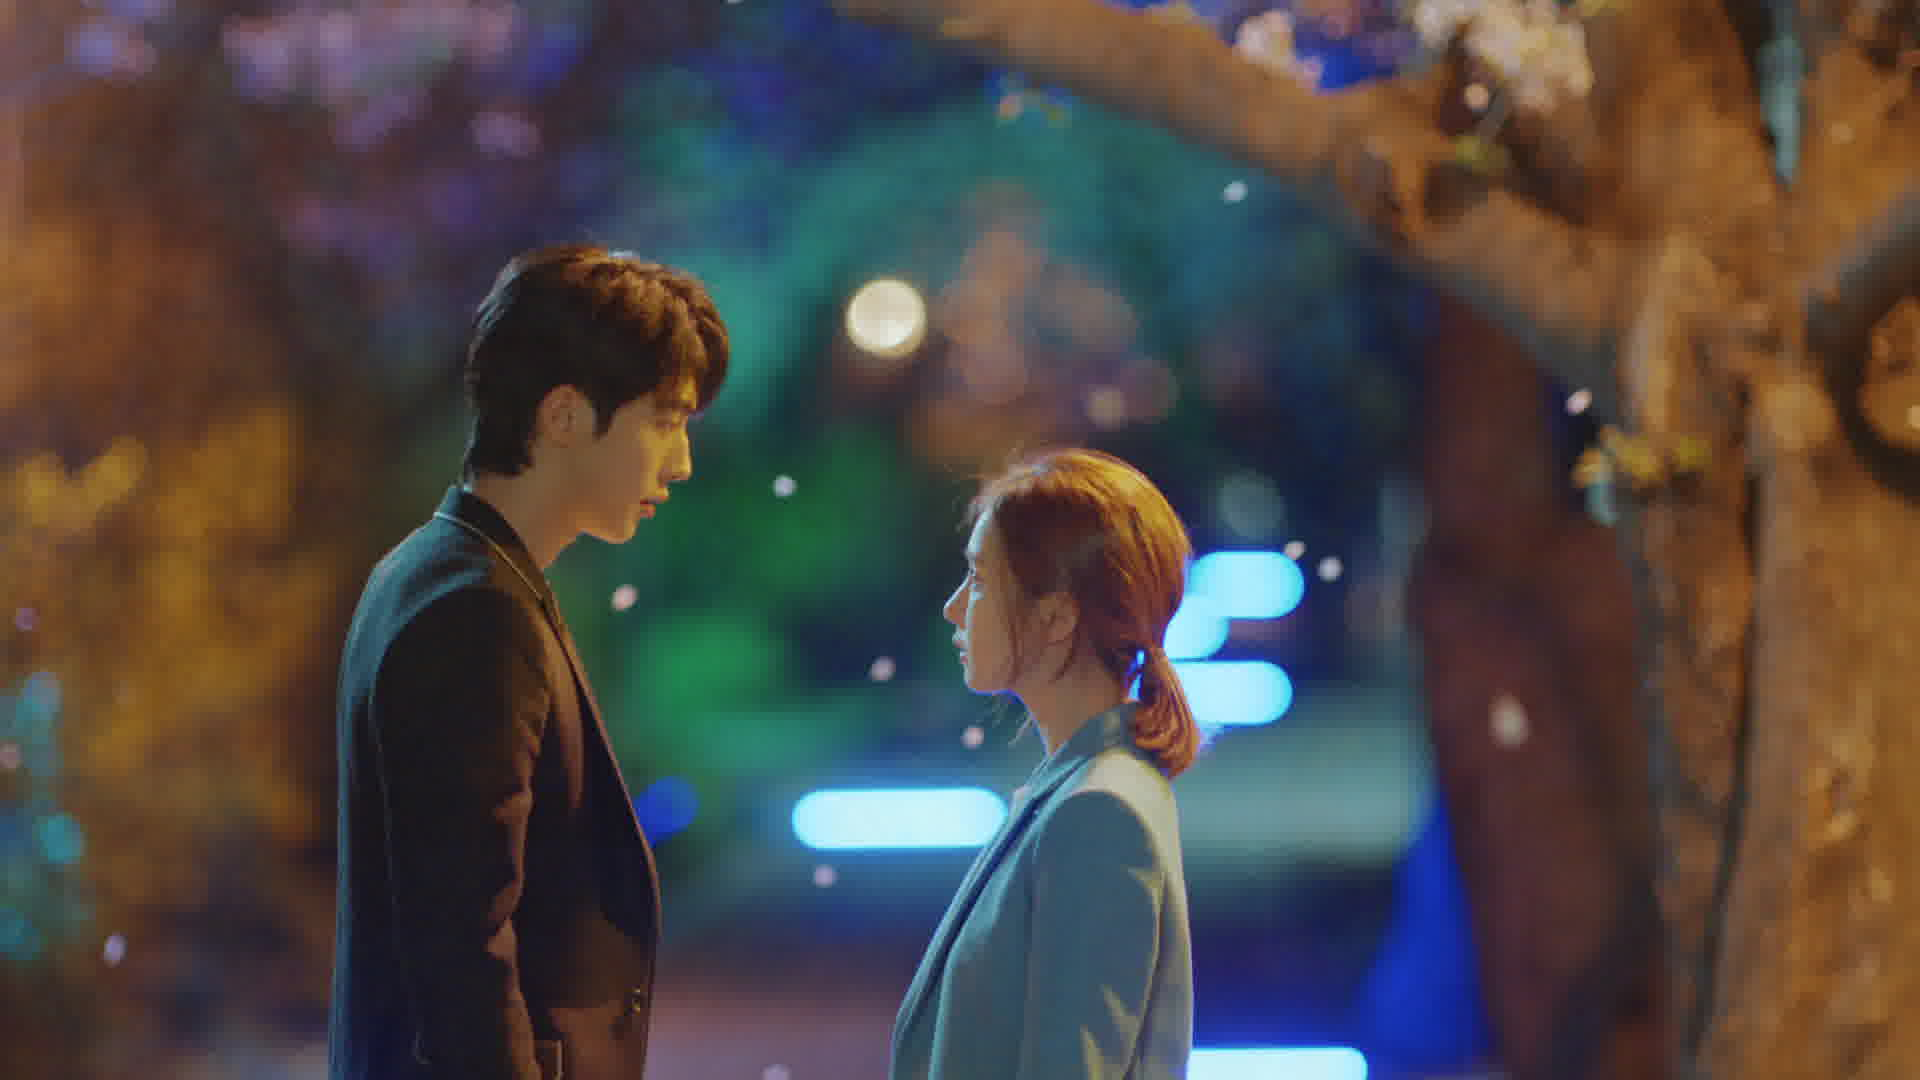 Trailer 2: Bride of the Water God